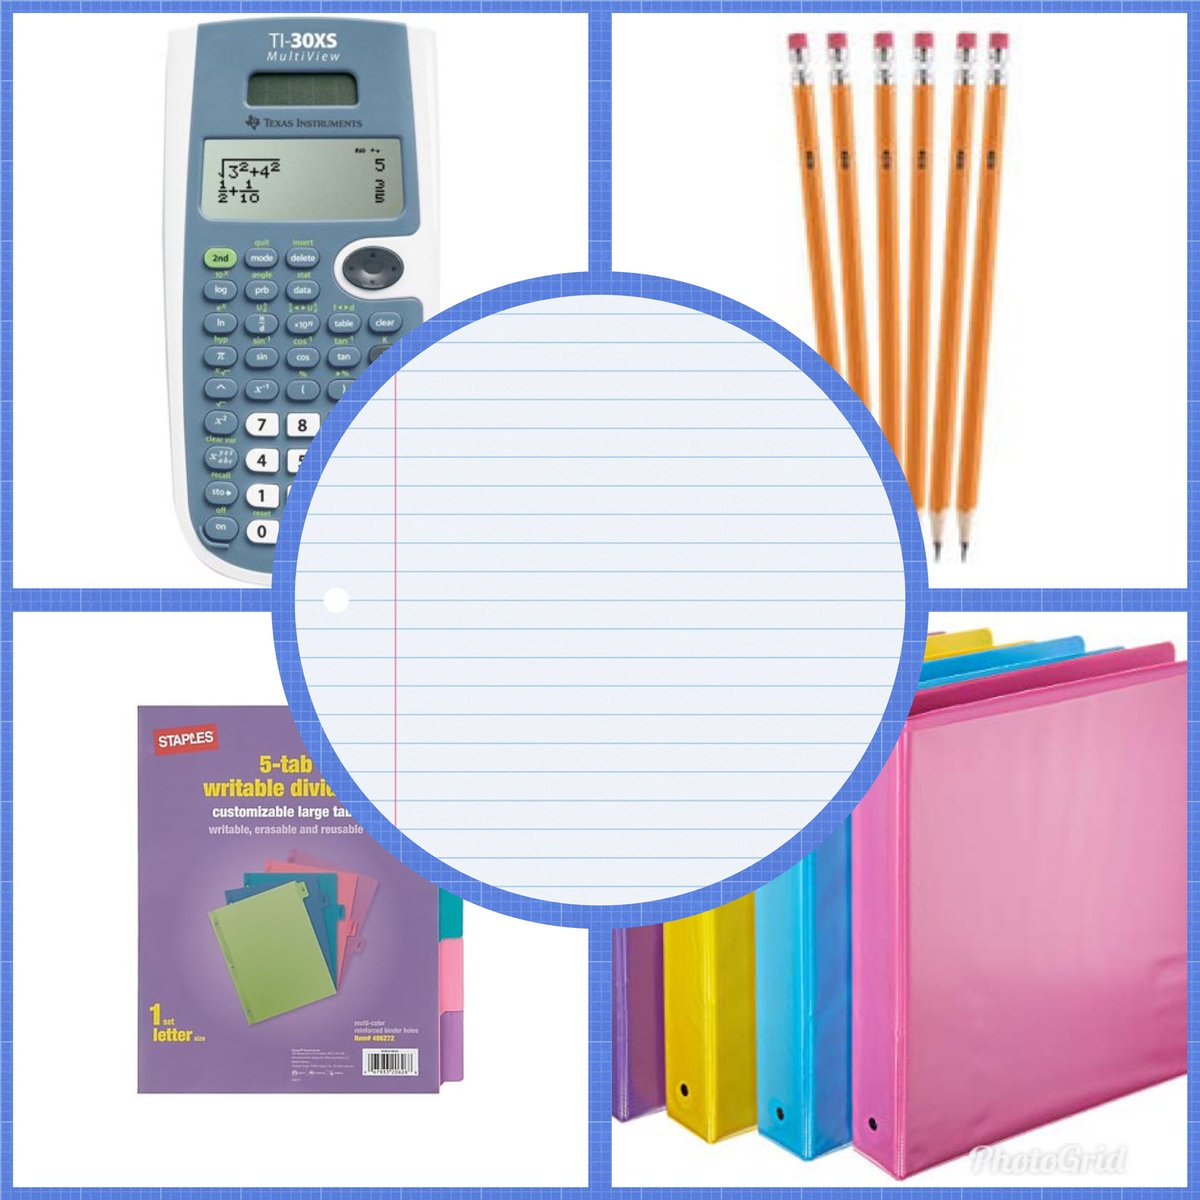 Are you out getting school supplies? This is what you need for math class! Binder, dividers, pencils, calculator and paper! https://t.co/LiOlWz43Je